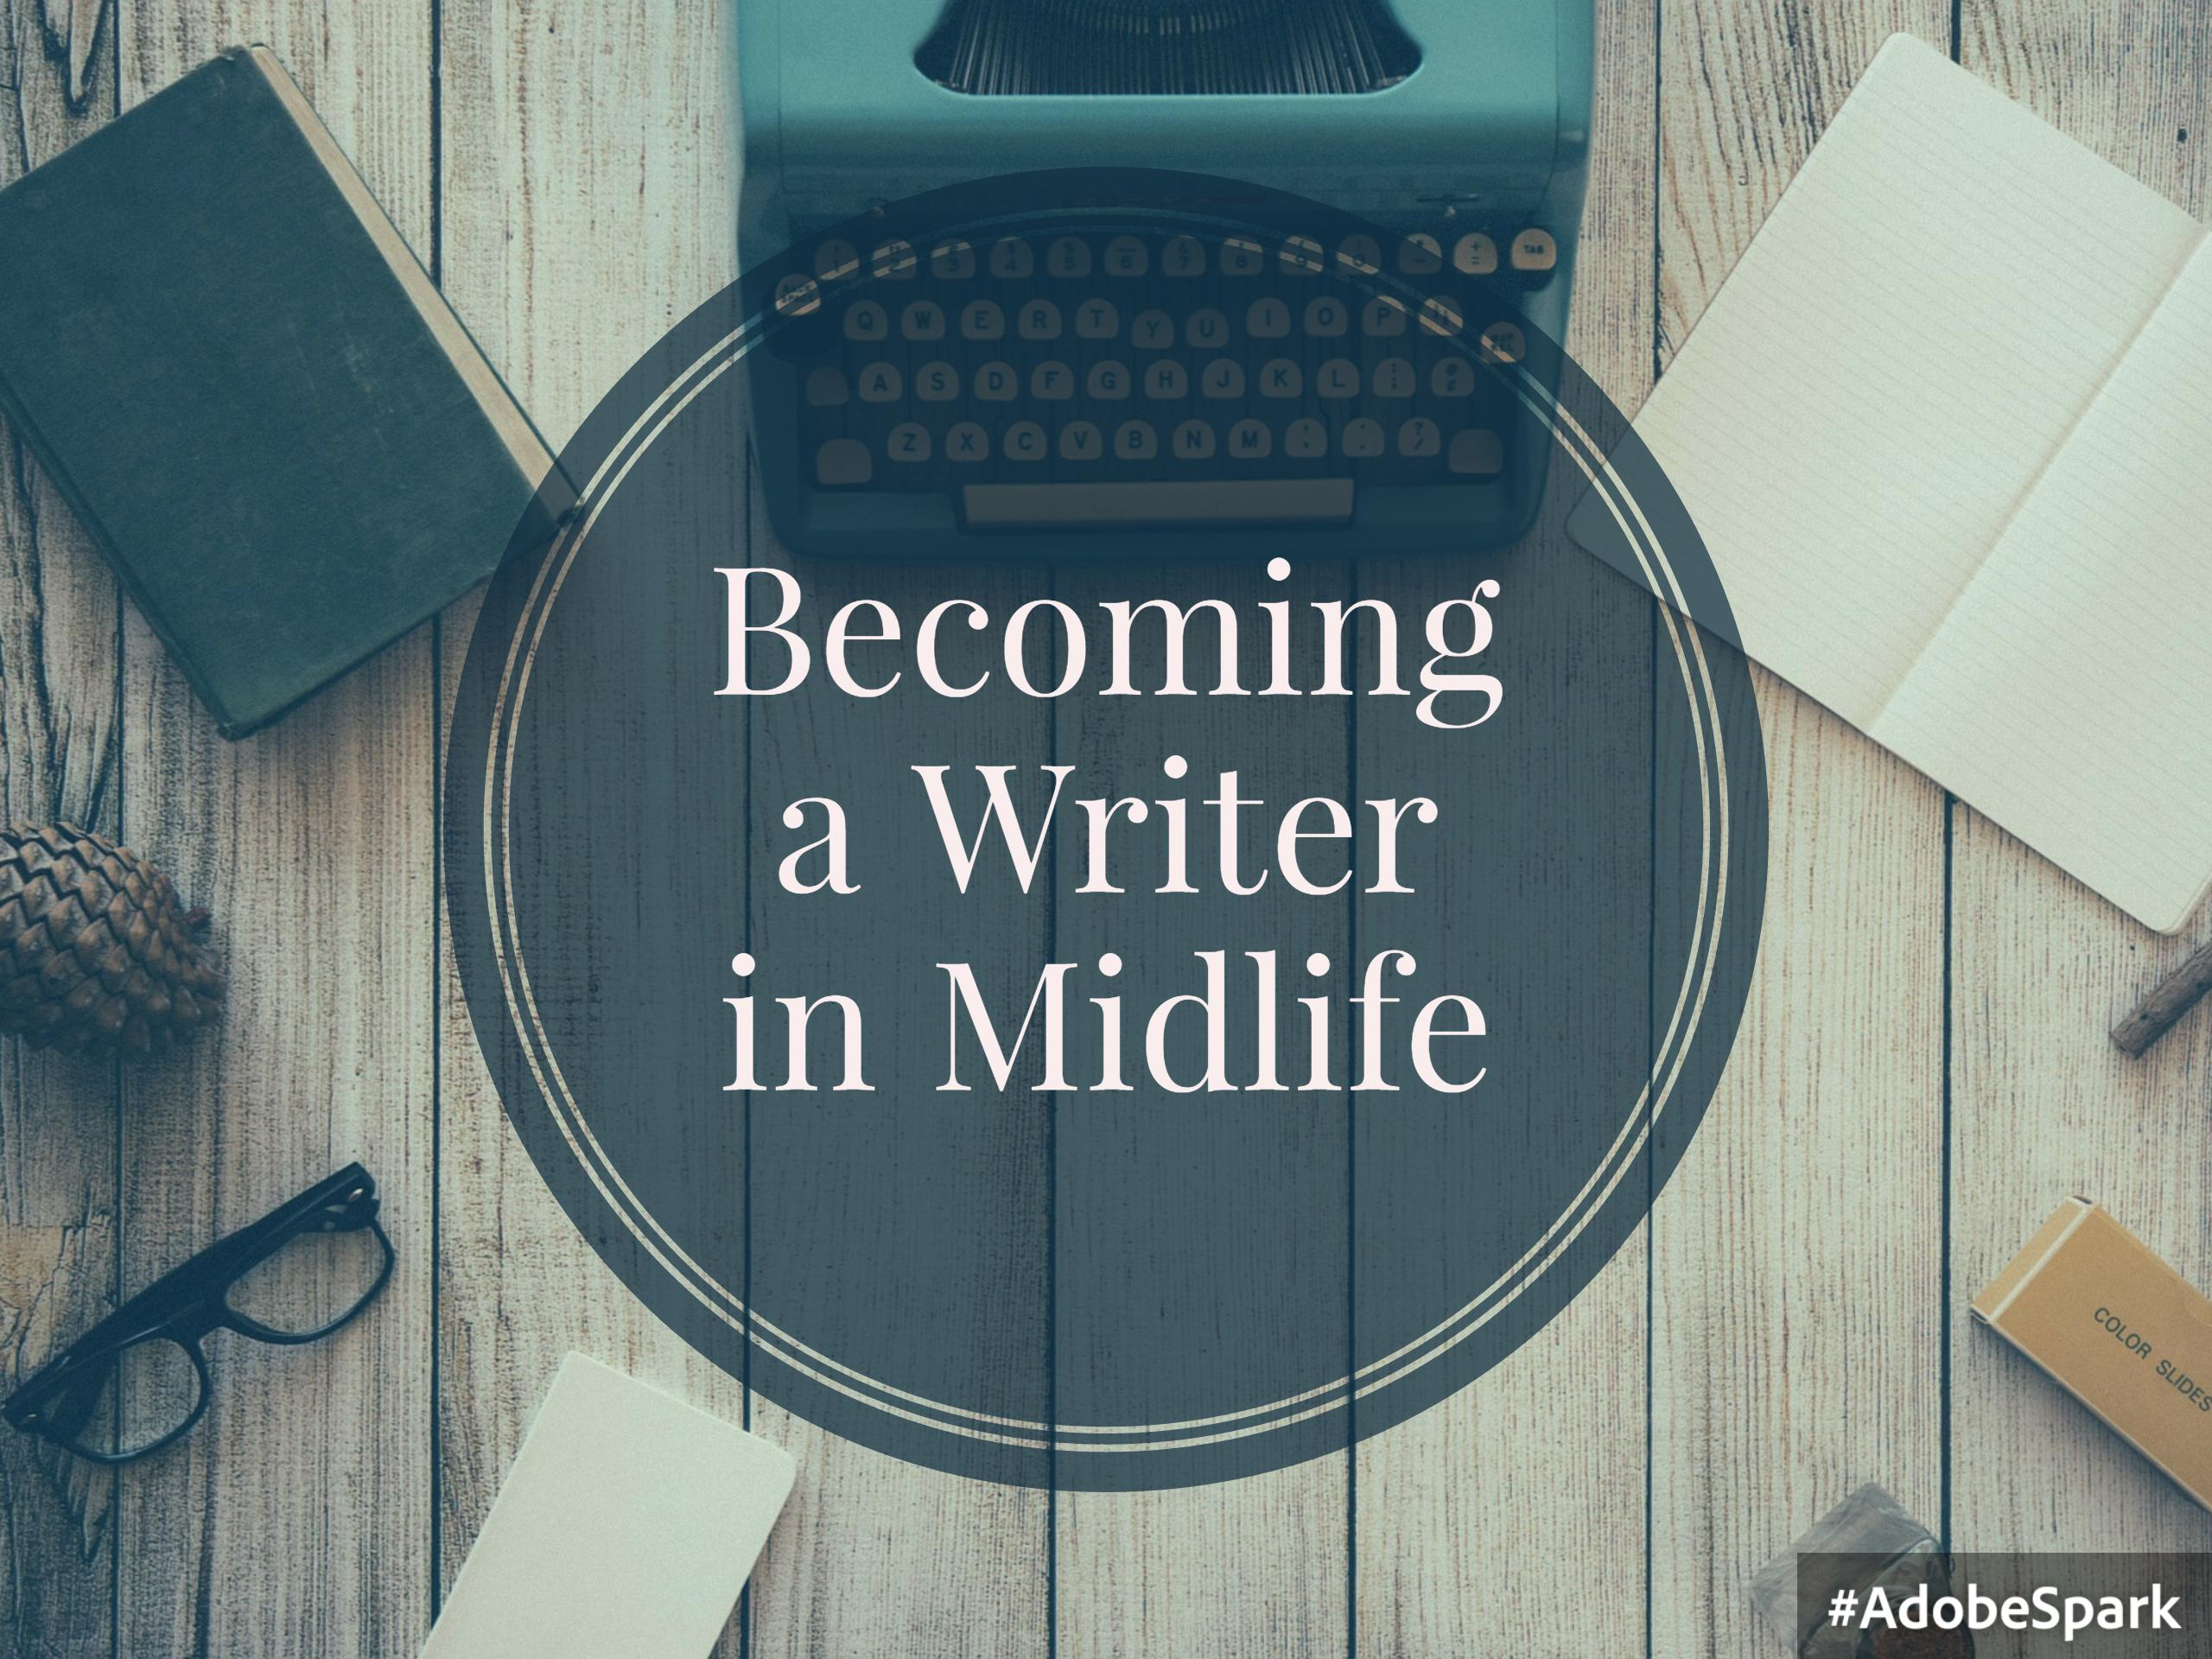 Becoming a Writer in Midlife